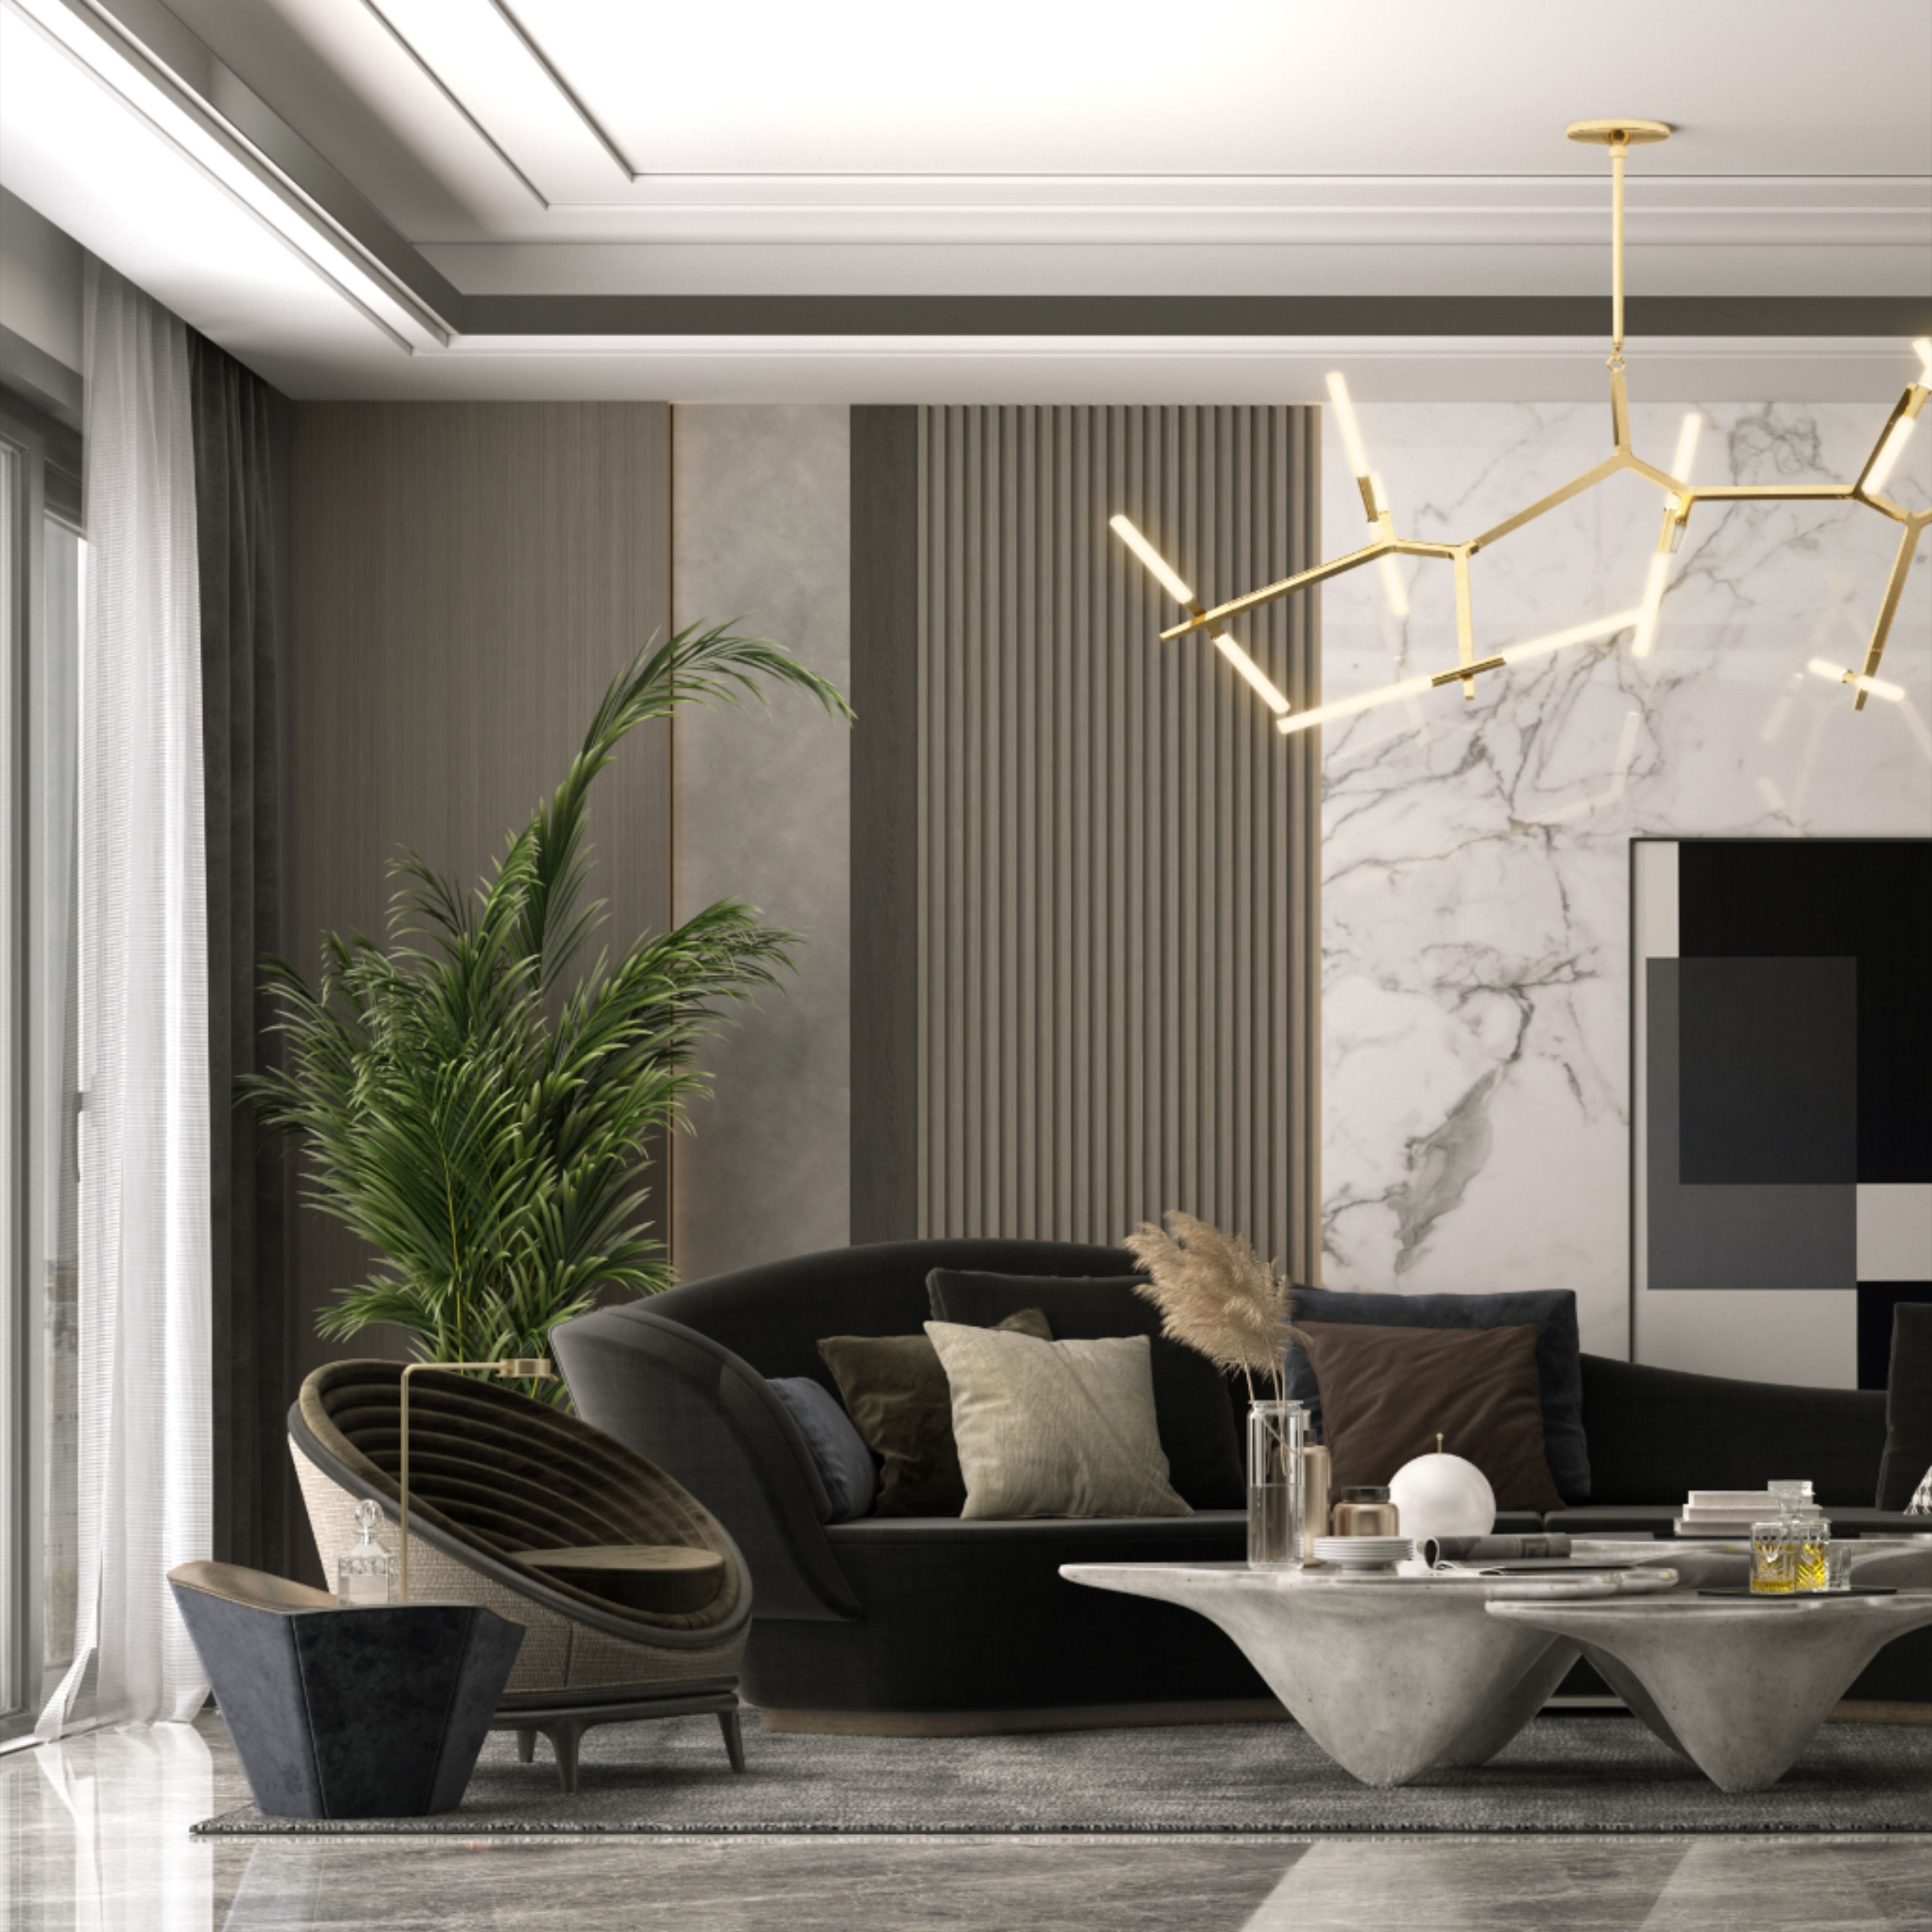 10 Top Coffee Table Ideas For Home Decor Luxury Living Room Luxury Living Room Coffee Table Design Modern Luxury Coffee Table [ 3500 x 3500 Pixel ]